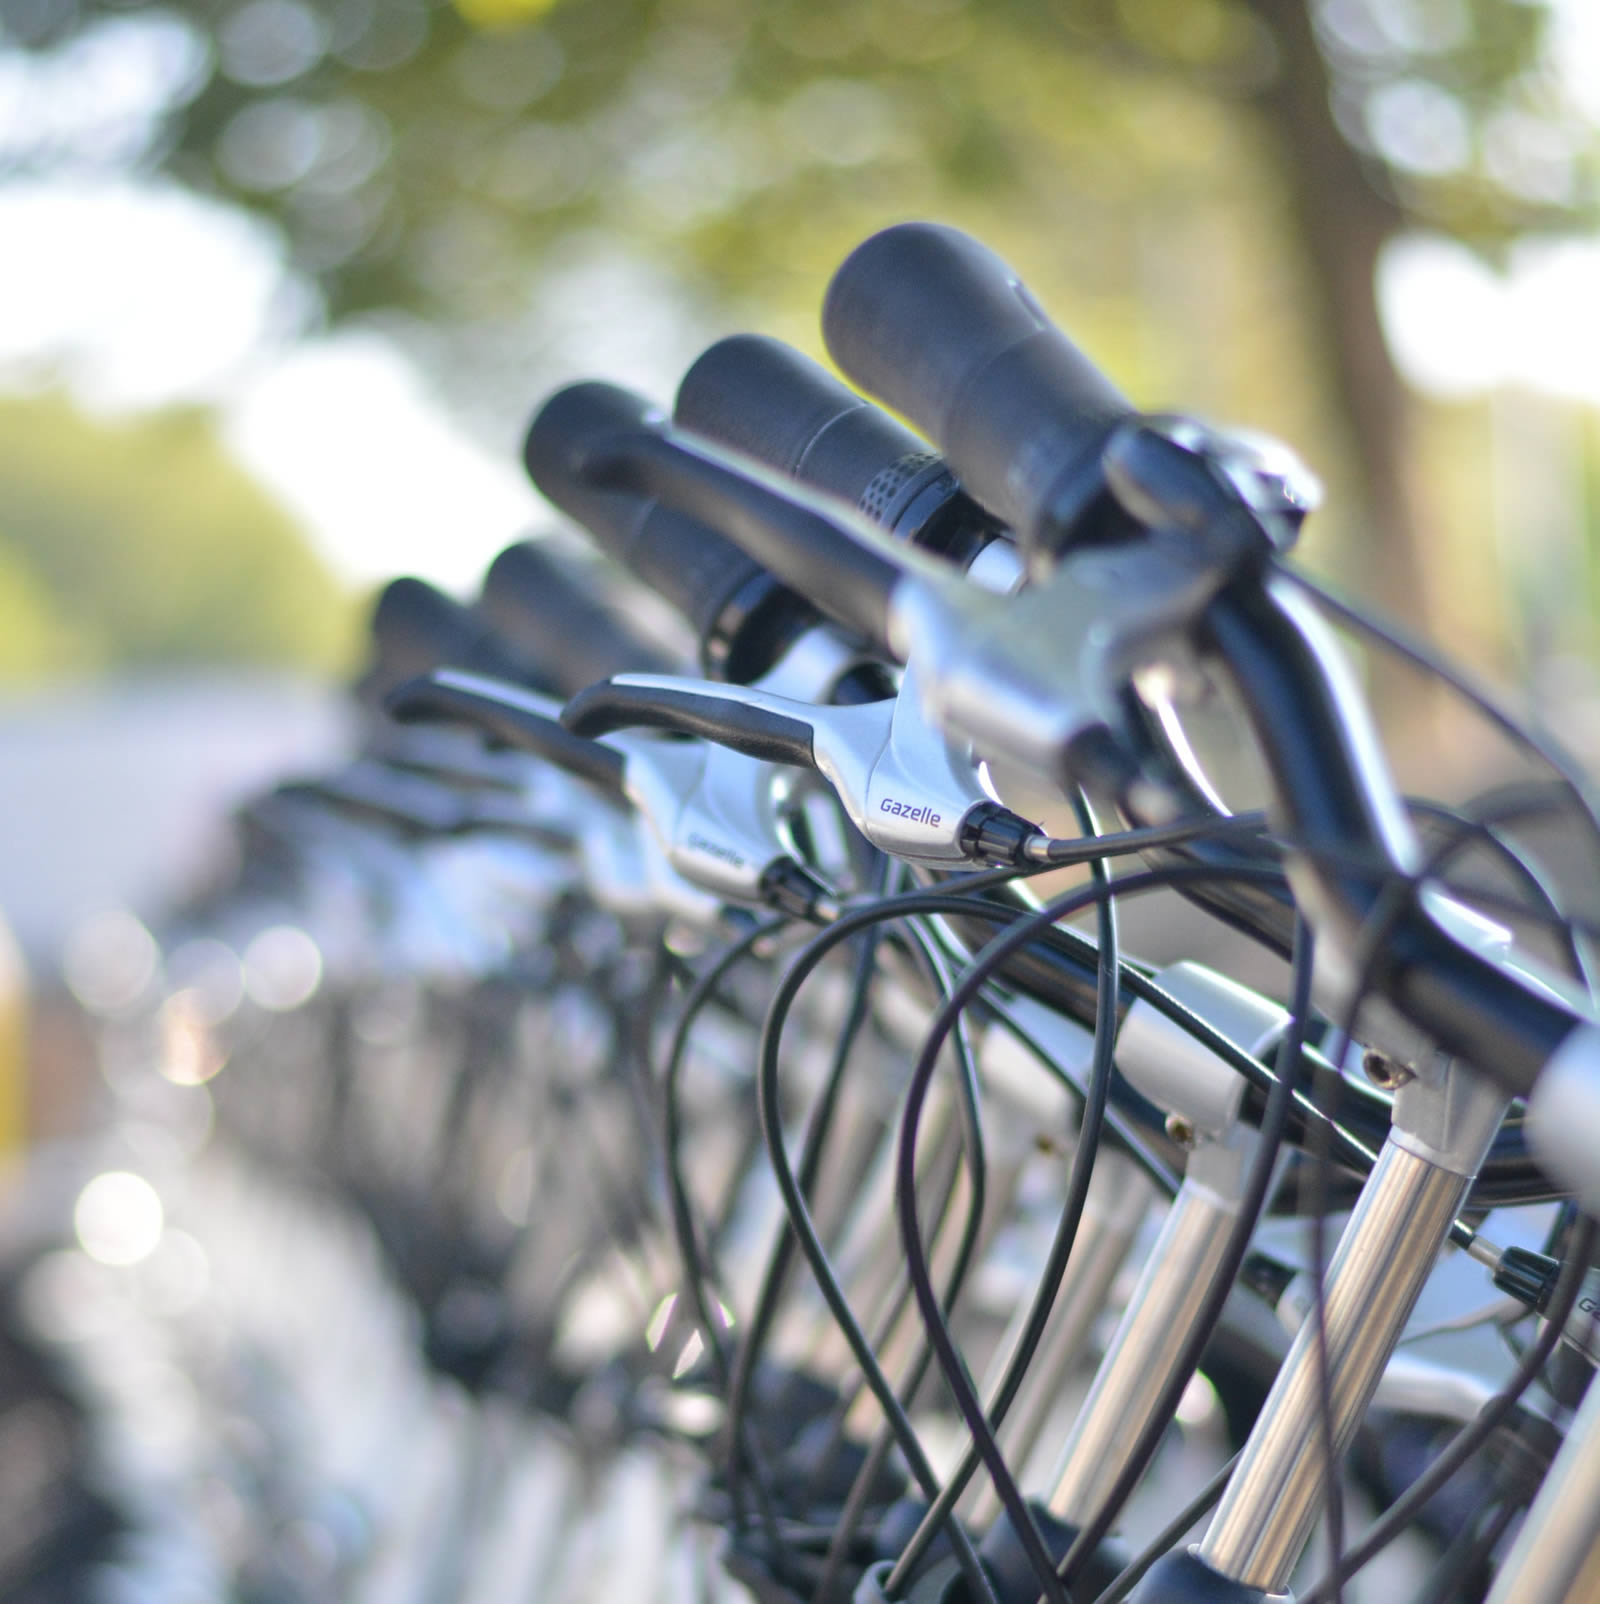 bicycles-close-up-cycle-stand-69118-2